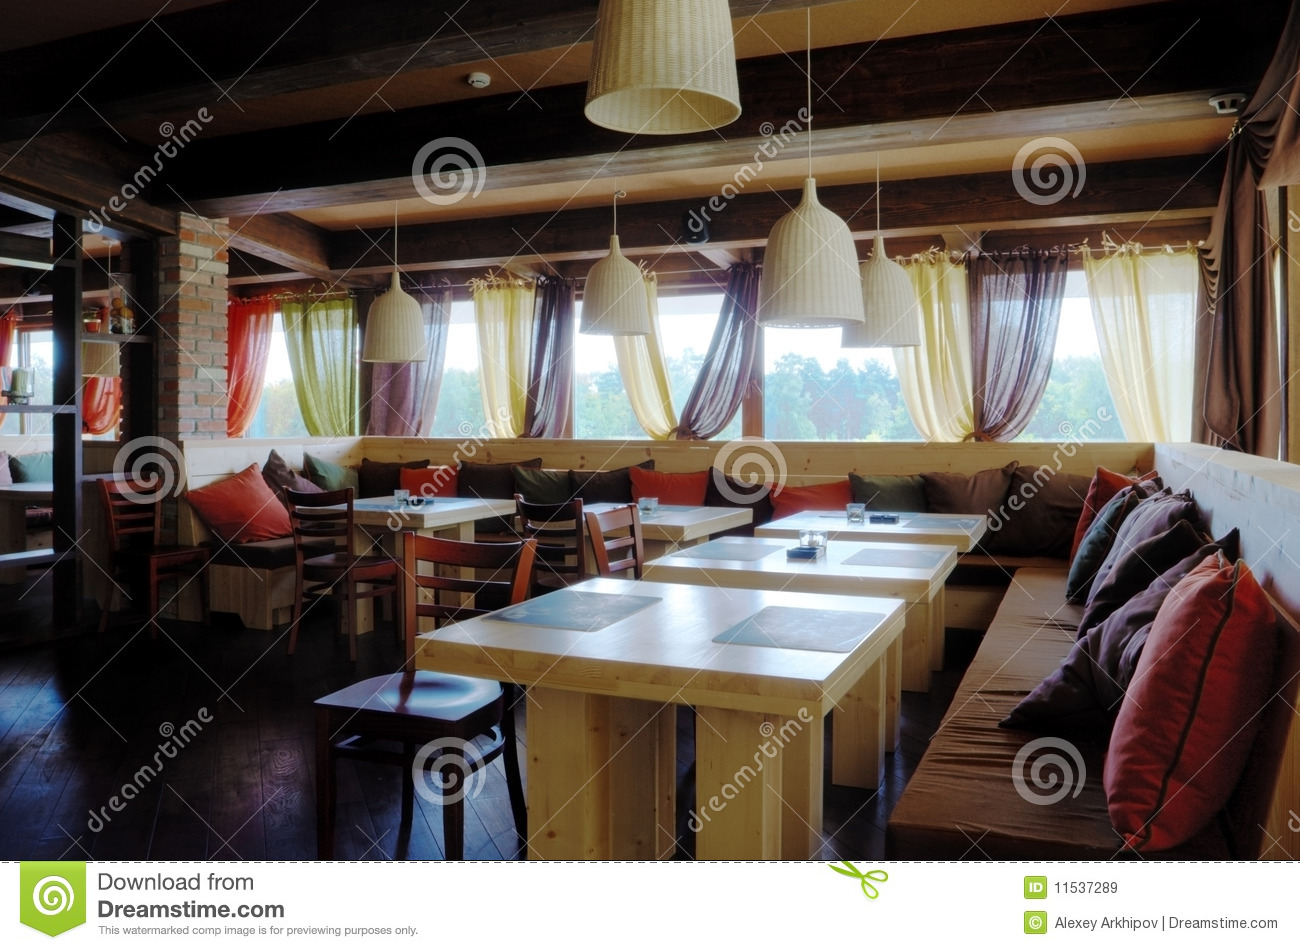 Restaurant interior in hdri royalty free stock images